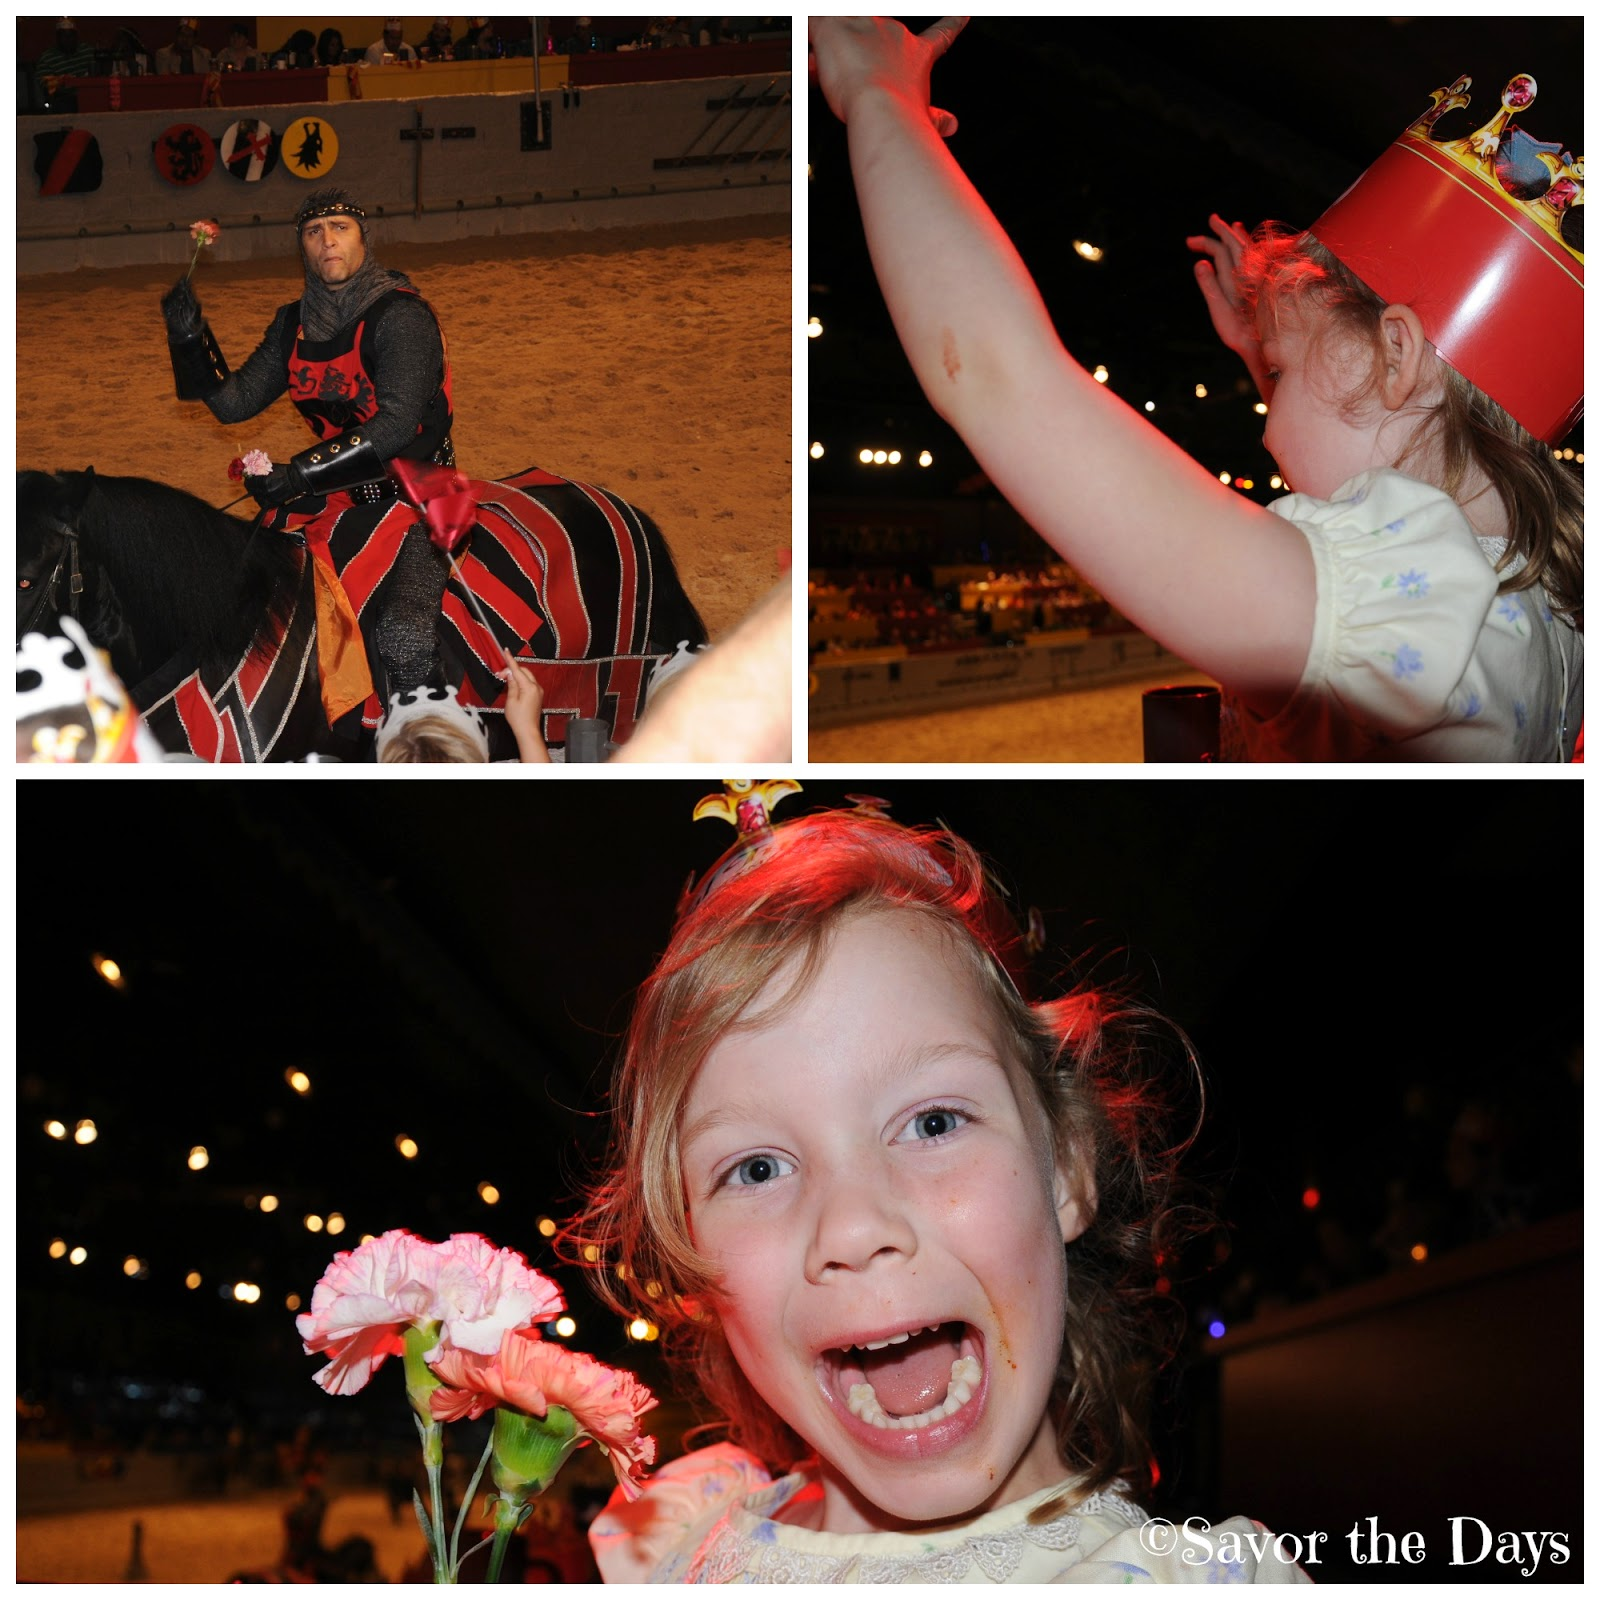 Knight throwing flowers to little girl at Medieval Times